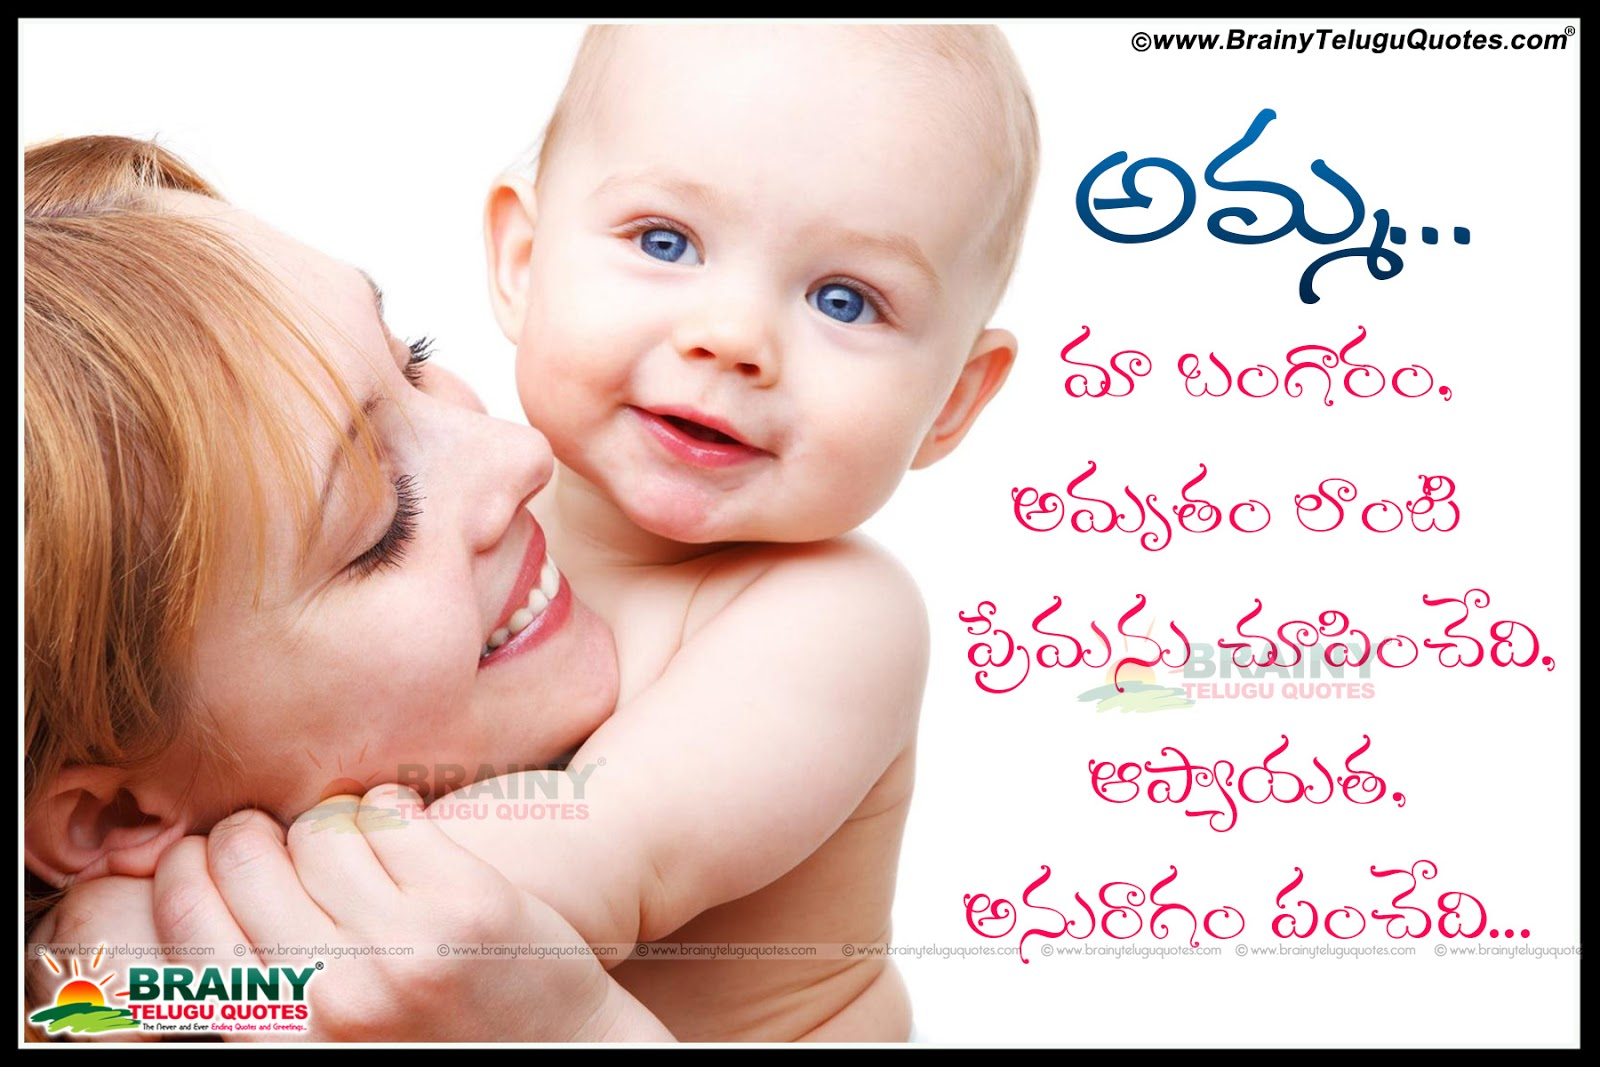 Top Amma Wallpapers In Telugu Wallpapers - Baby First Kiss Quotes - HD Wallpaper